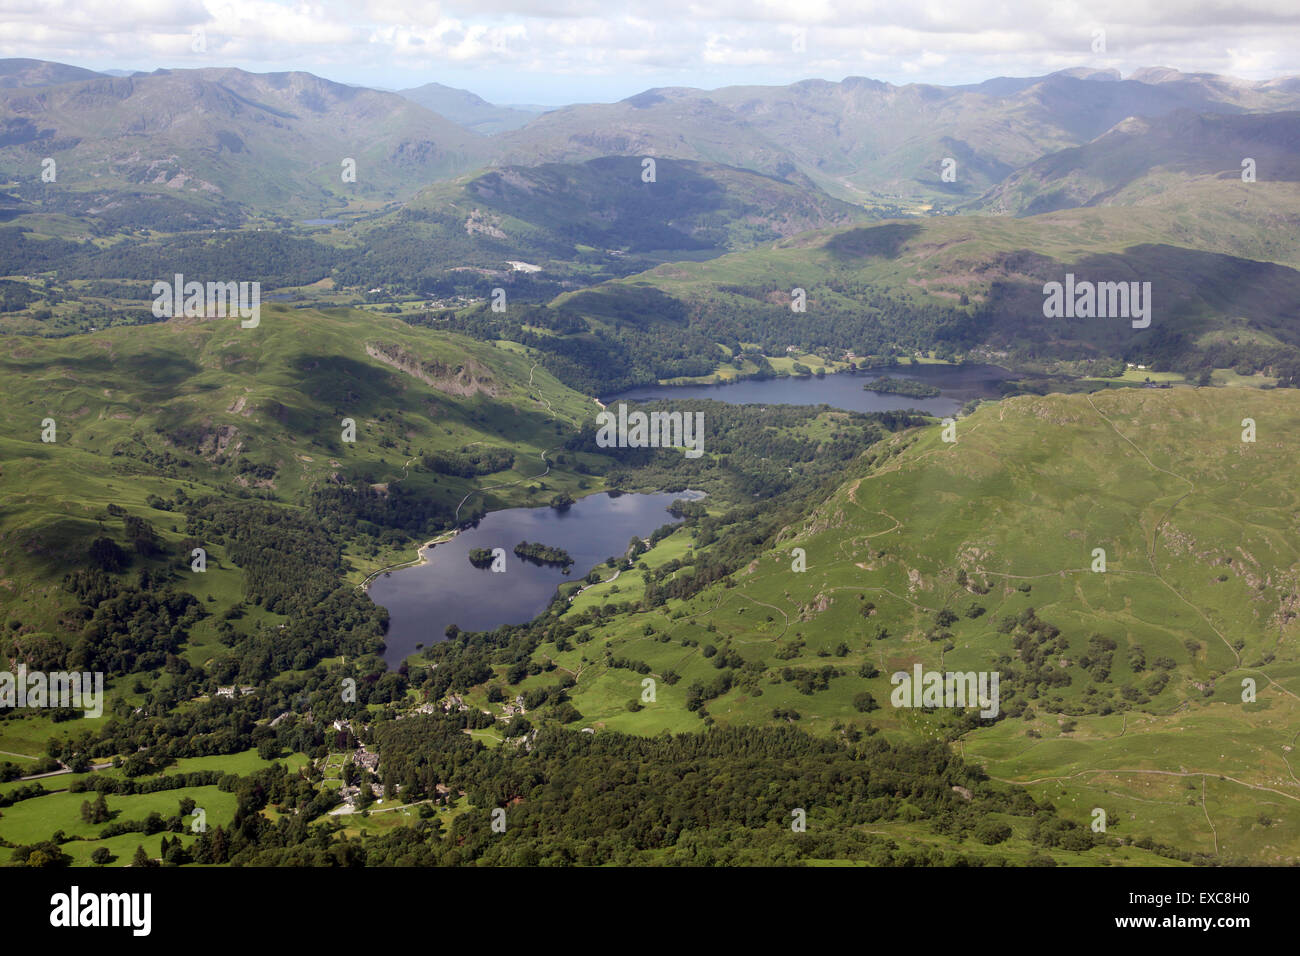 aerial view of Rydal Water & Grasmere in the Lake District, Cumbria, UK - Stock Image